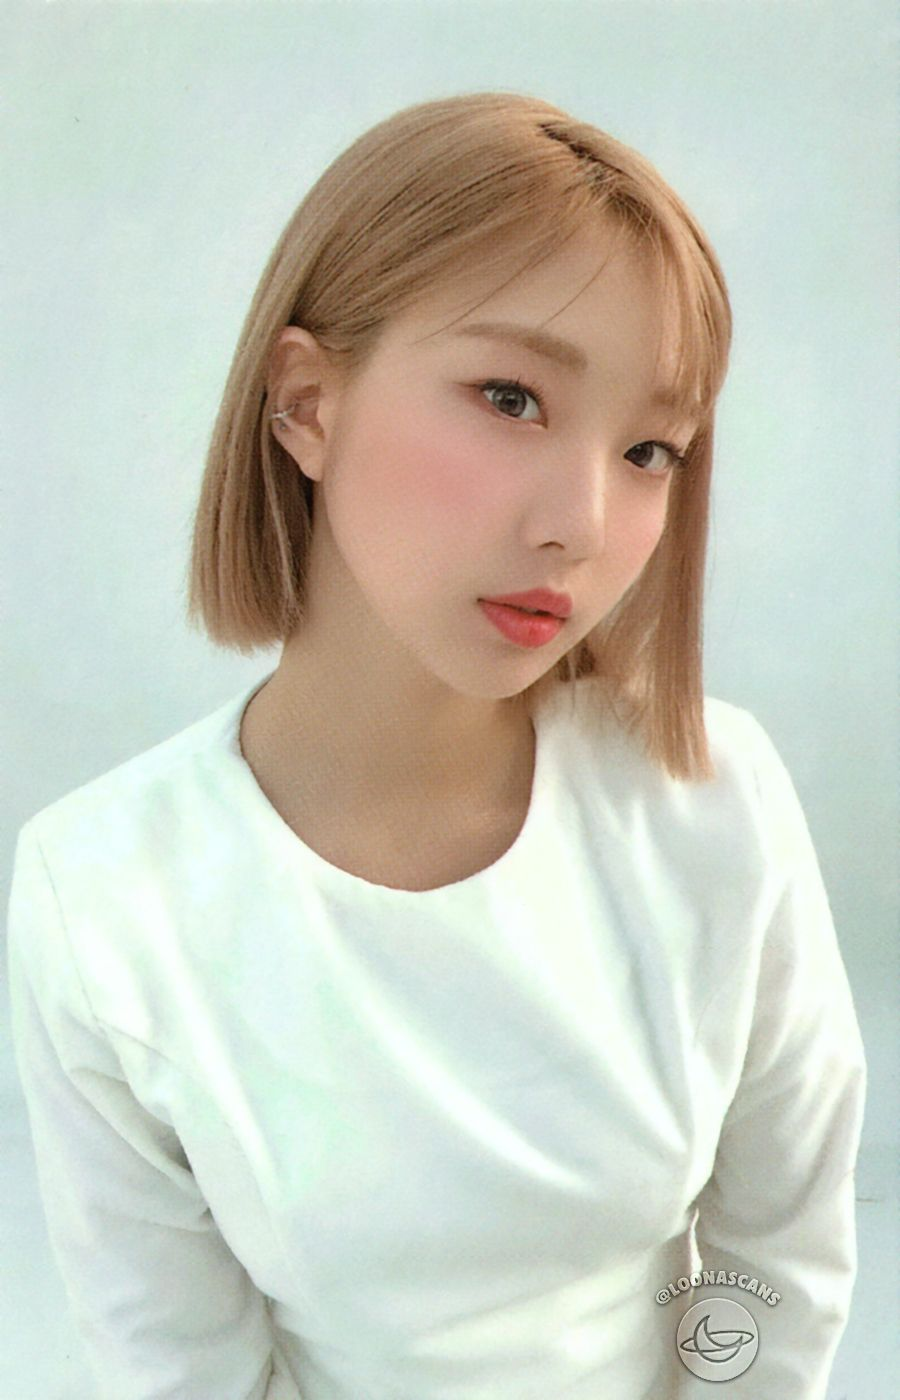 loona scans on Twitter